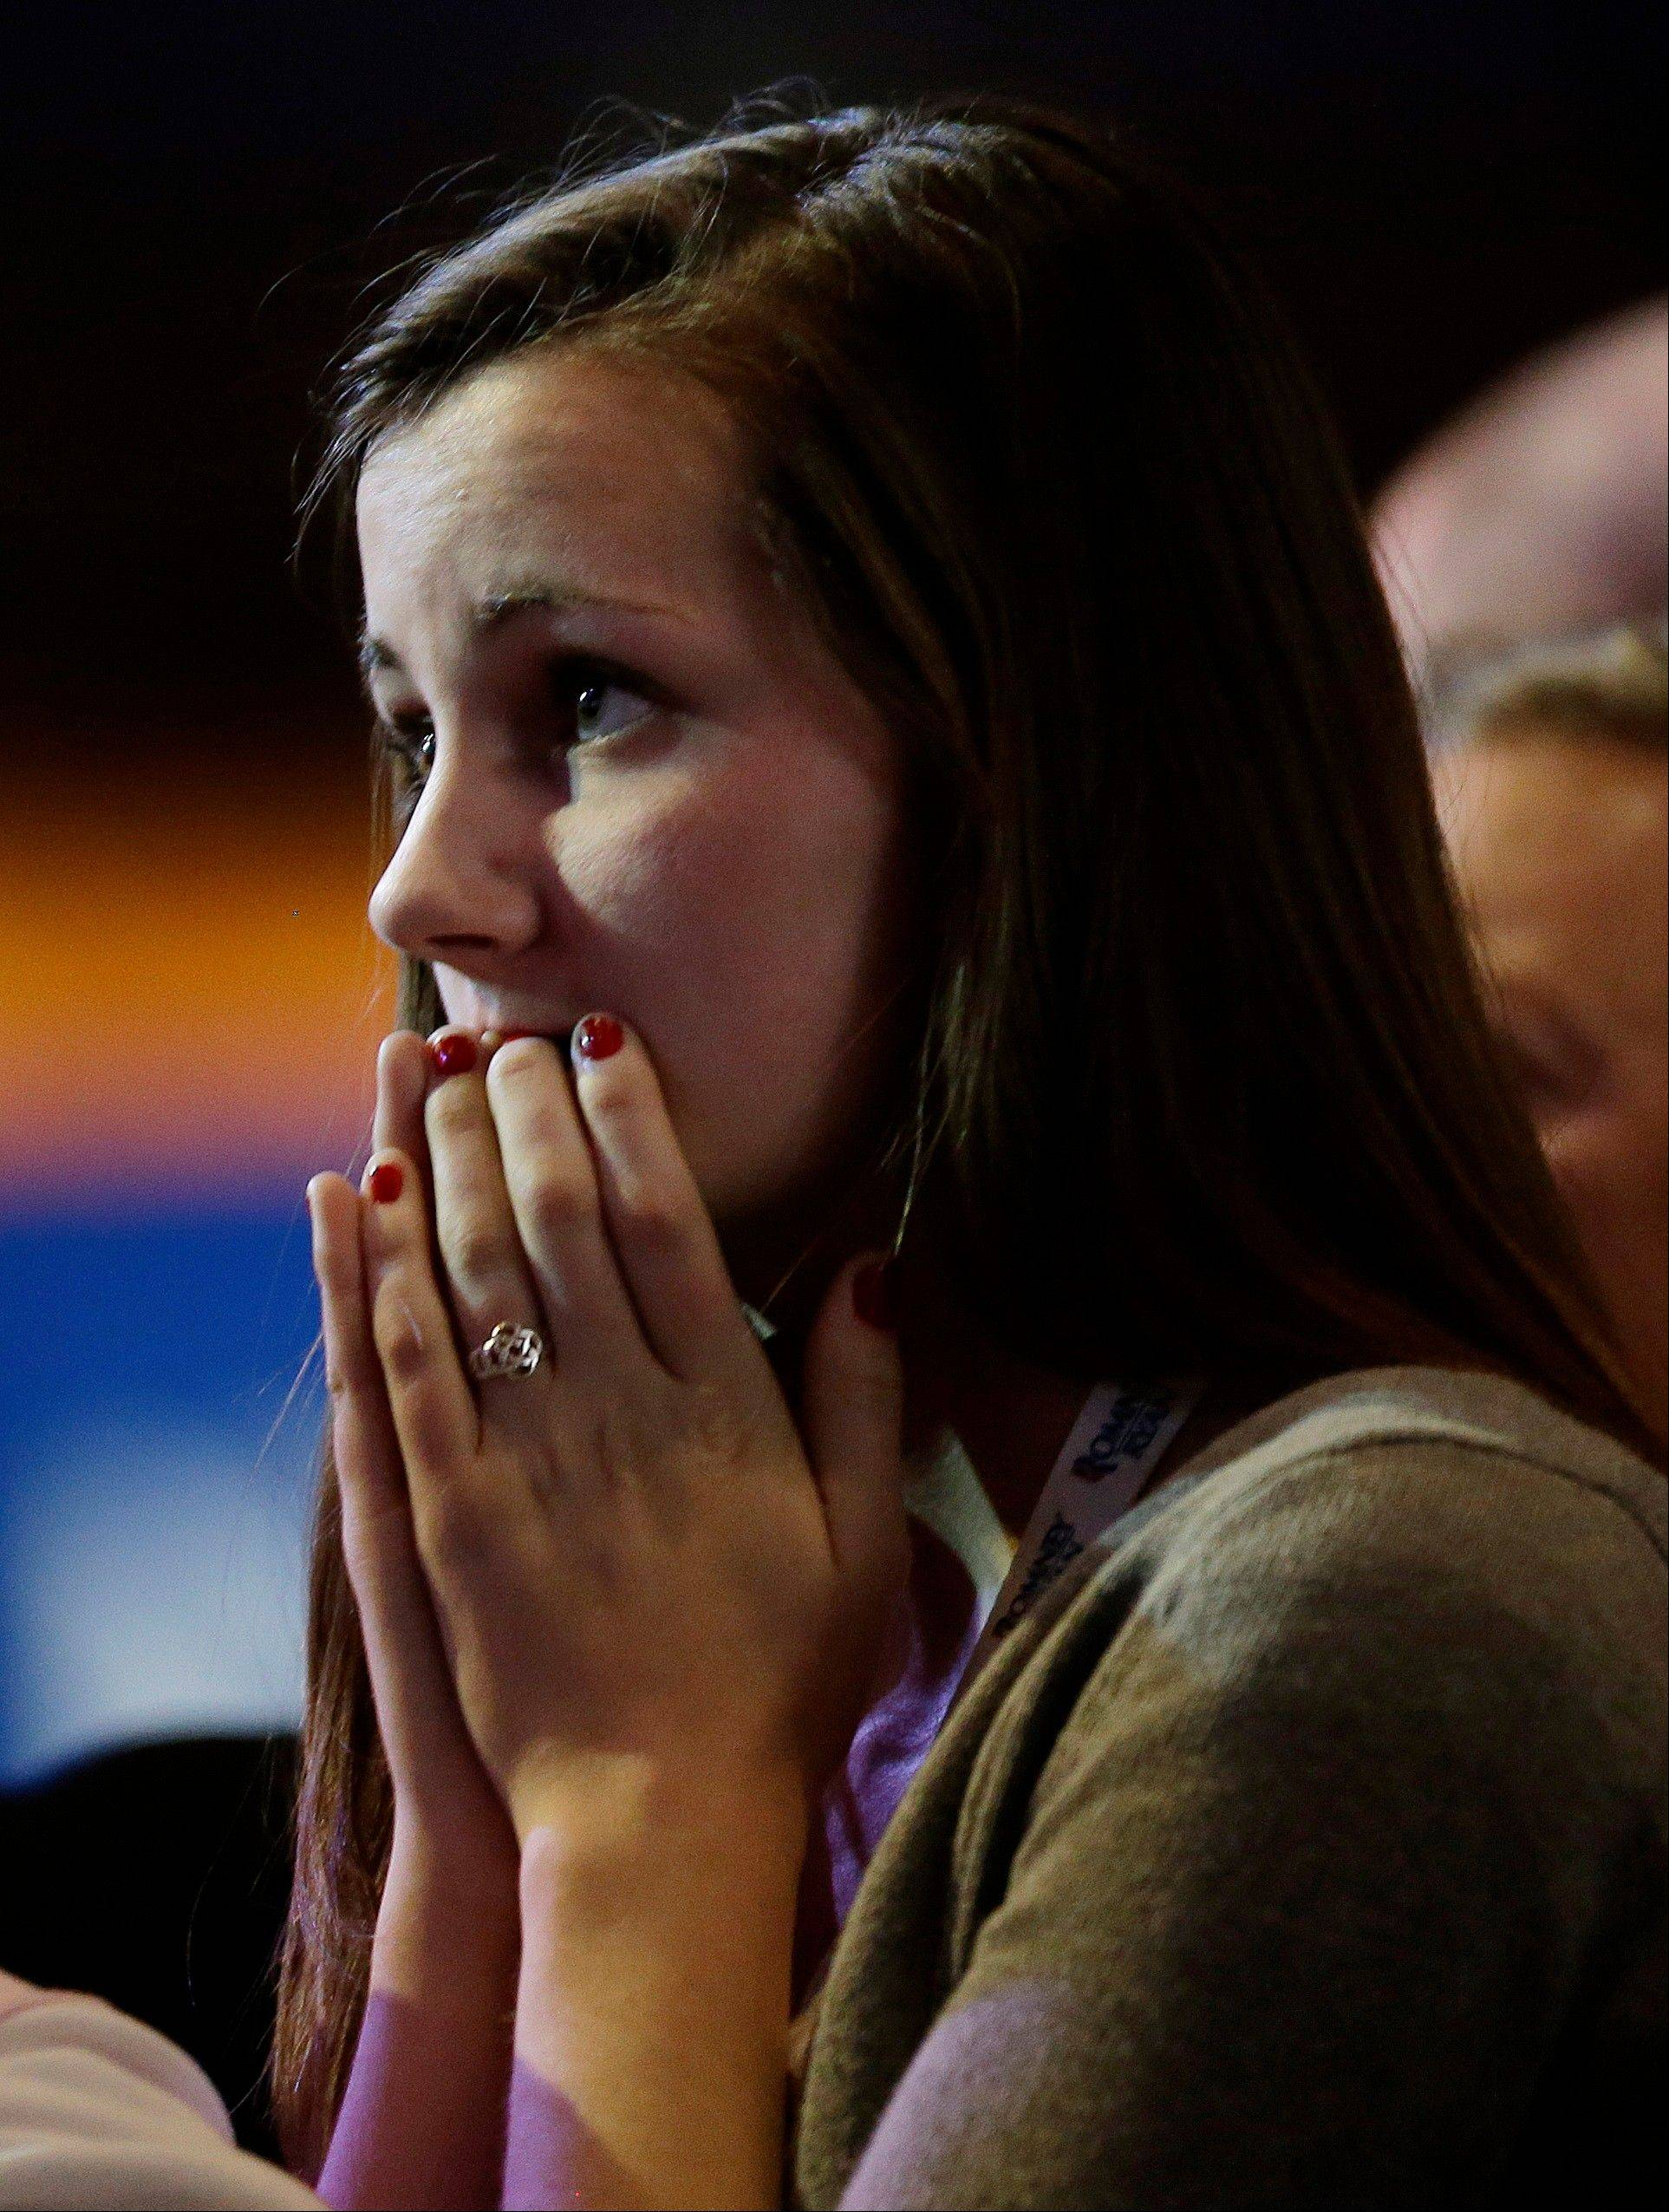 Sixteen-year-old Aly Hansen, from Amherst, N.H. watches vote results displayed on a television screen during Republican presidential candidate and former Massachusetts Gov. Mitt Romney's election night rally, Tuesday, Nov. 6, 2012, in Boston.